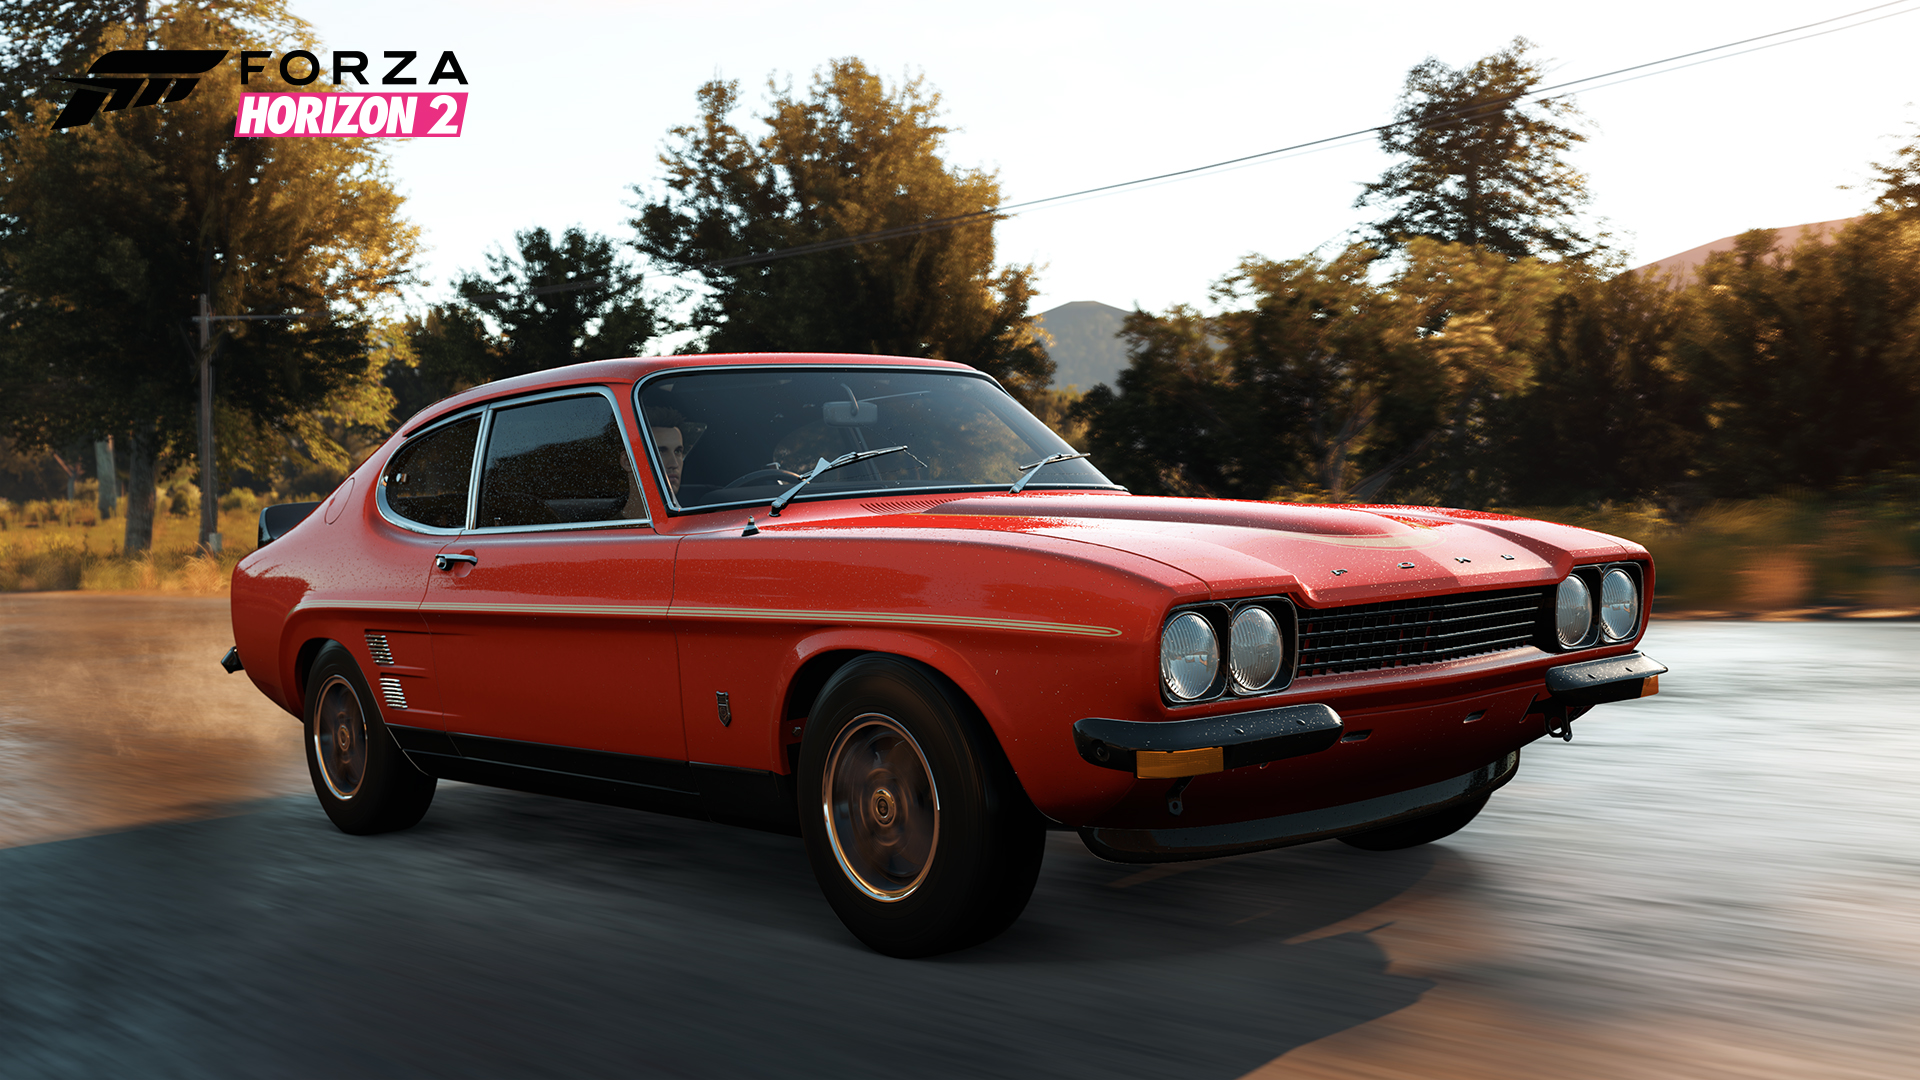 Forza Horizon 2 1973 Ford Capri RS3100